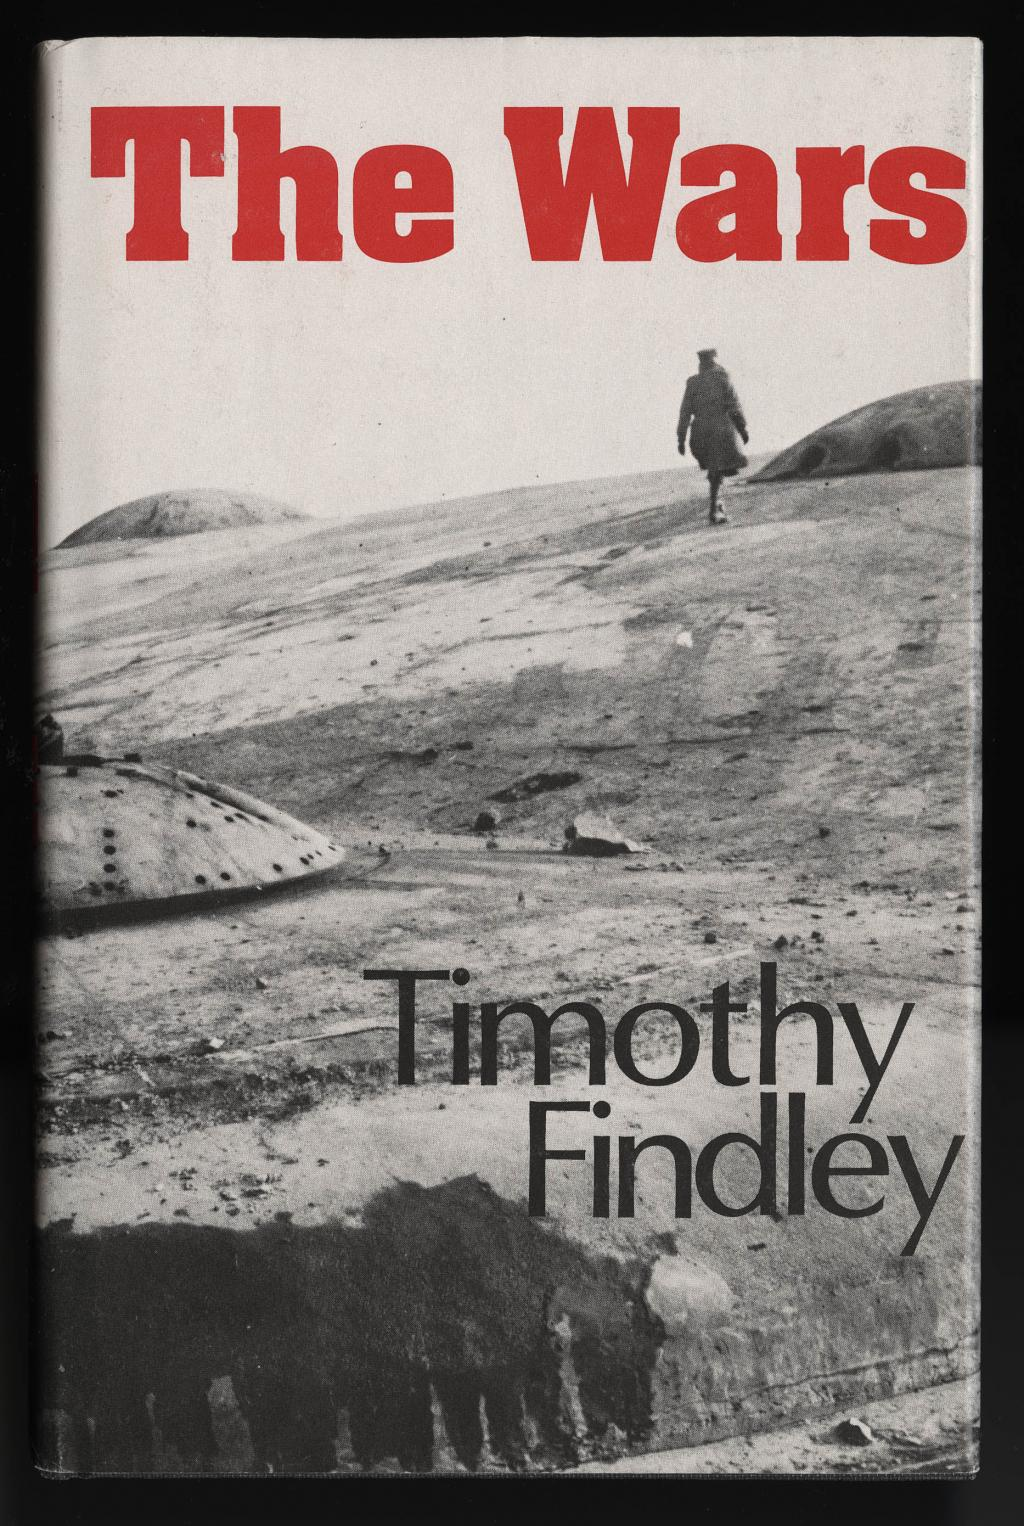 an analysis of the consequence of world war i in the war by timothy findley Mother and son in the wars by timothy findley - world war one  of being debilitated for some period of time as a consequence  literary analysis, timothy.